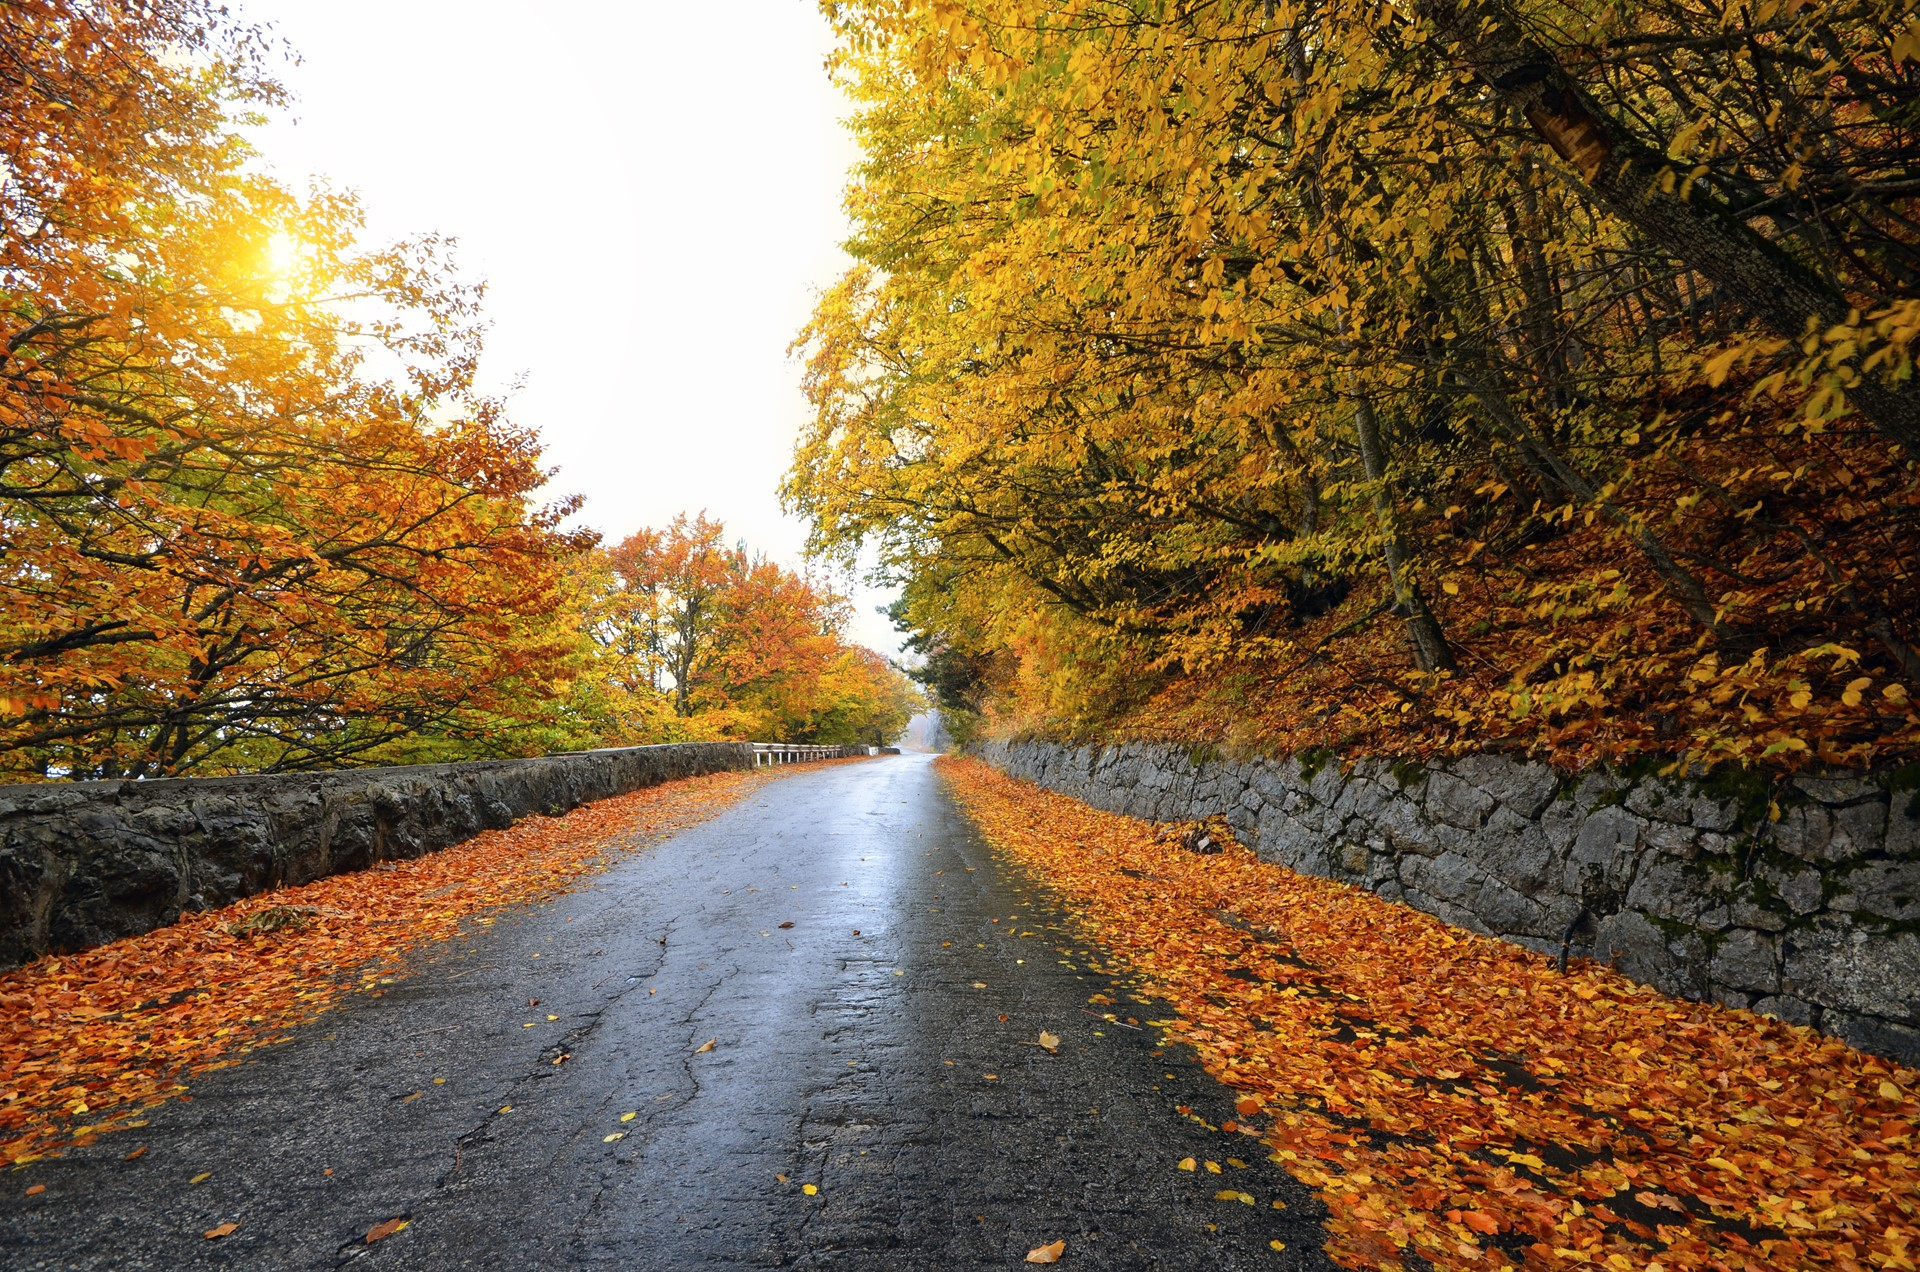 Forest road yellow trees side by side beautiful wallpaper for Desktop